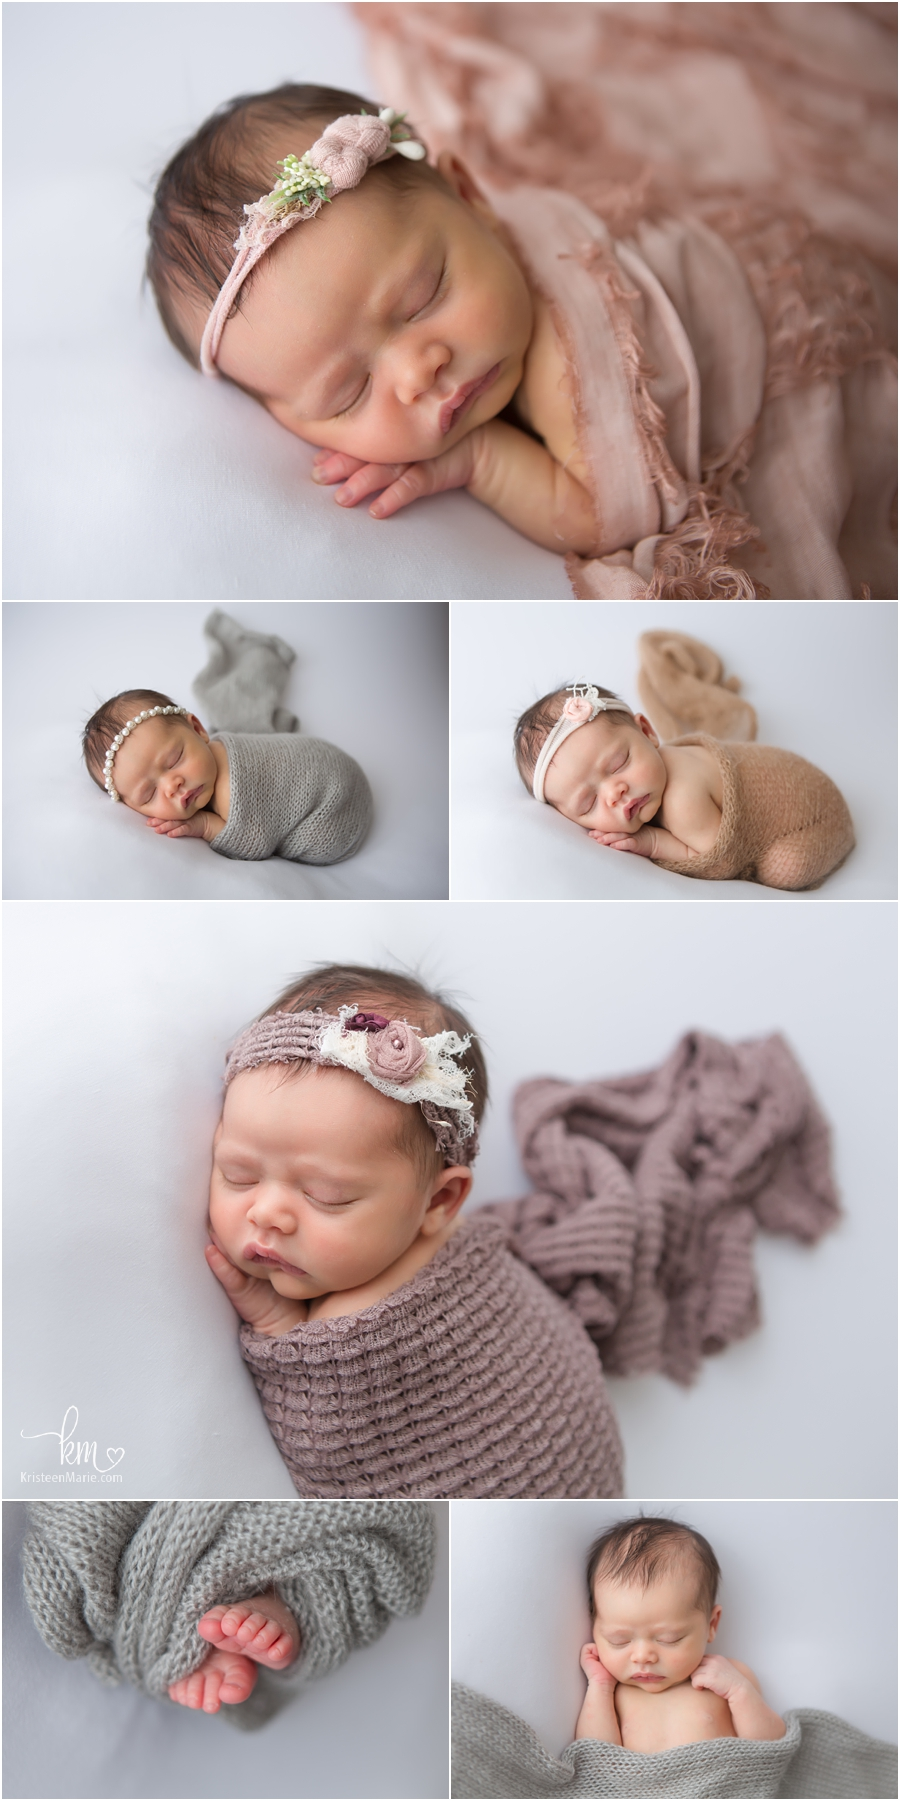 baby on white - sleeping newborn baby from Indianapolis, Indiana